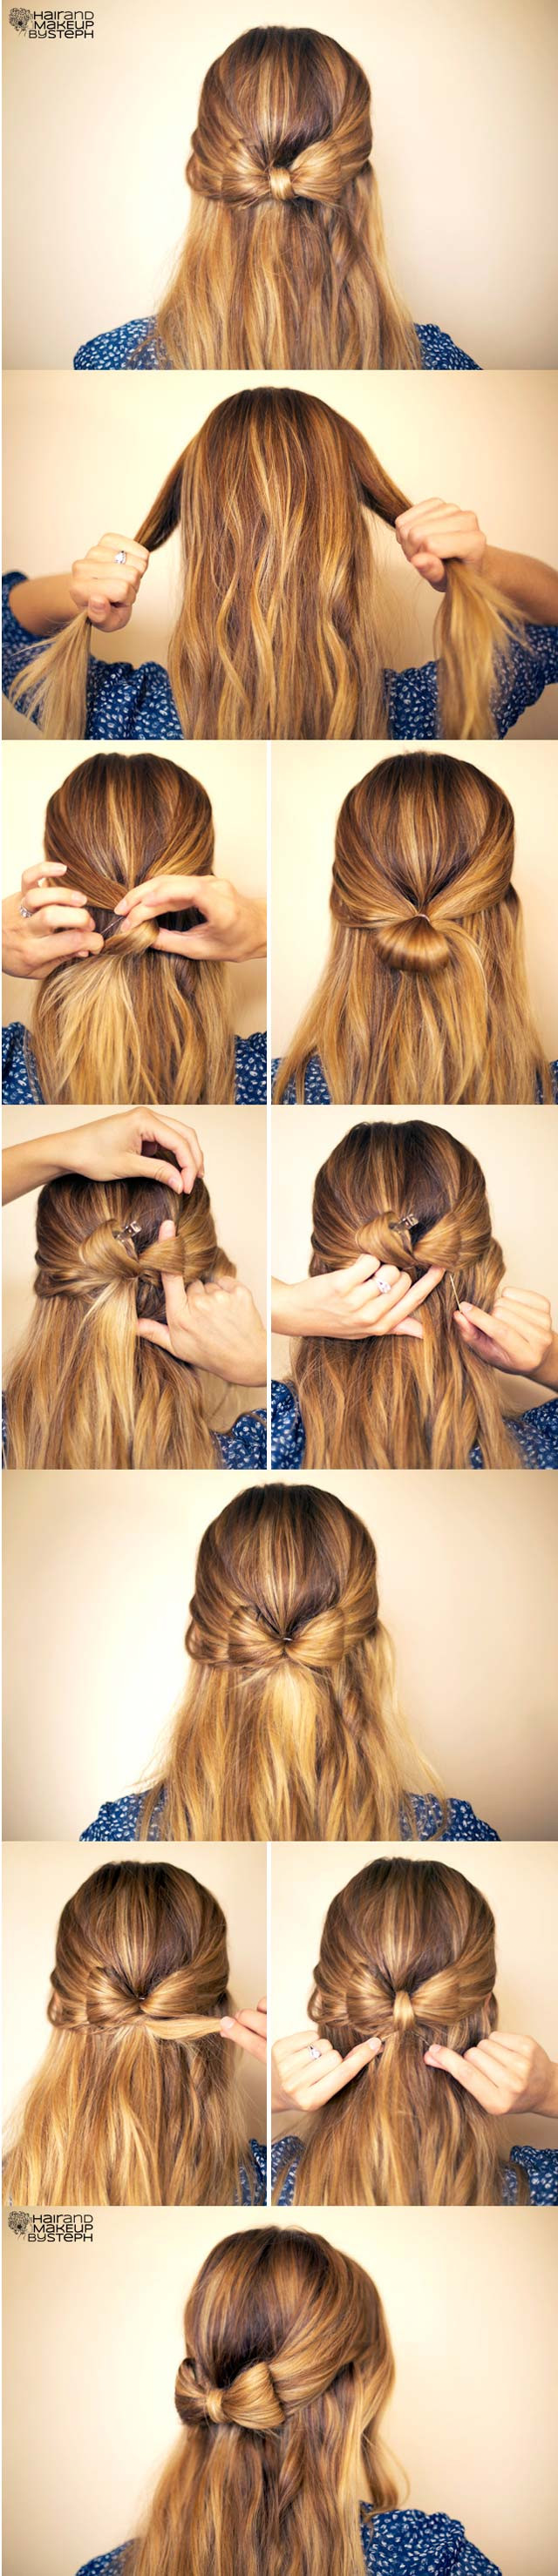 Best ideas about Cute Hairstyles With Bows . Save or Pin DIY Your Step by Step for the Best Cute Hairstyles Now.